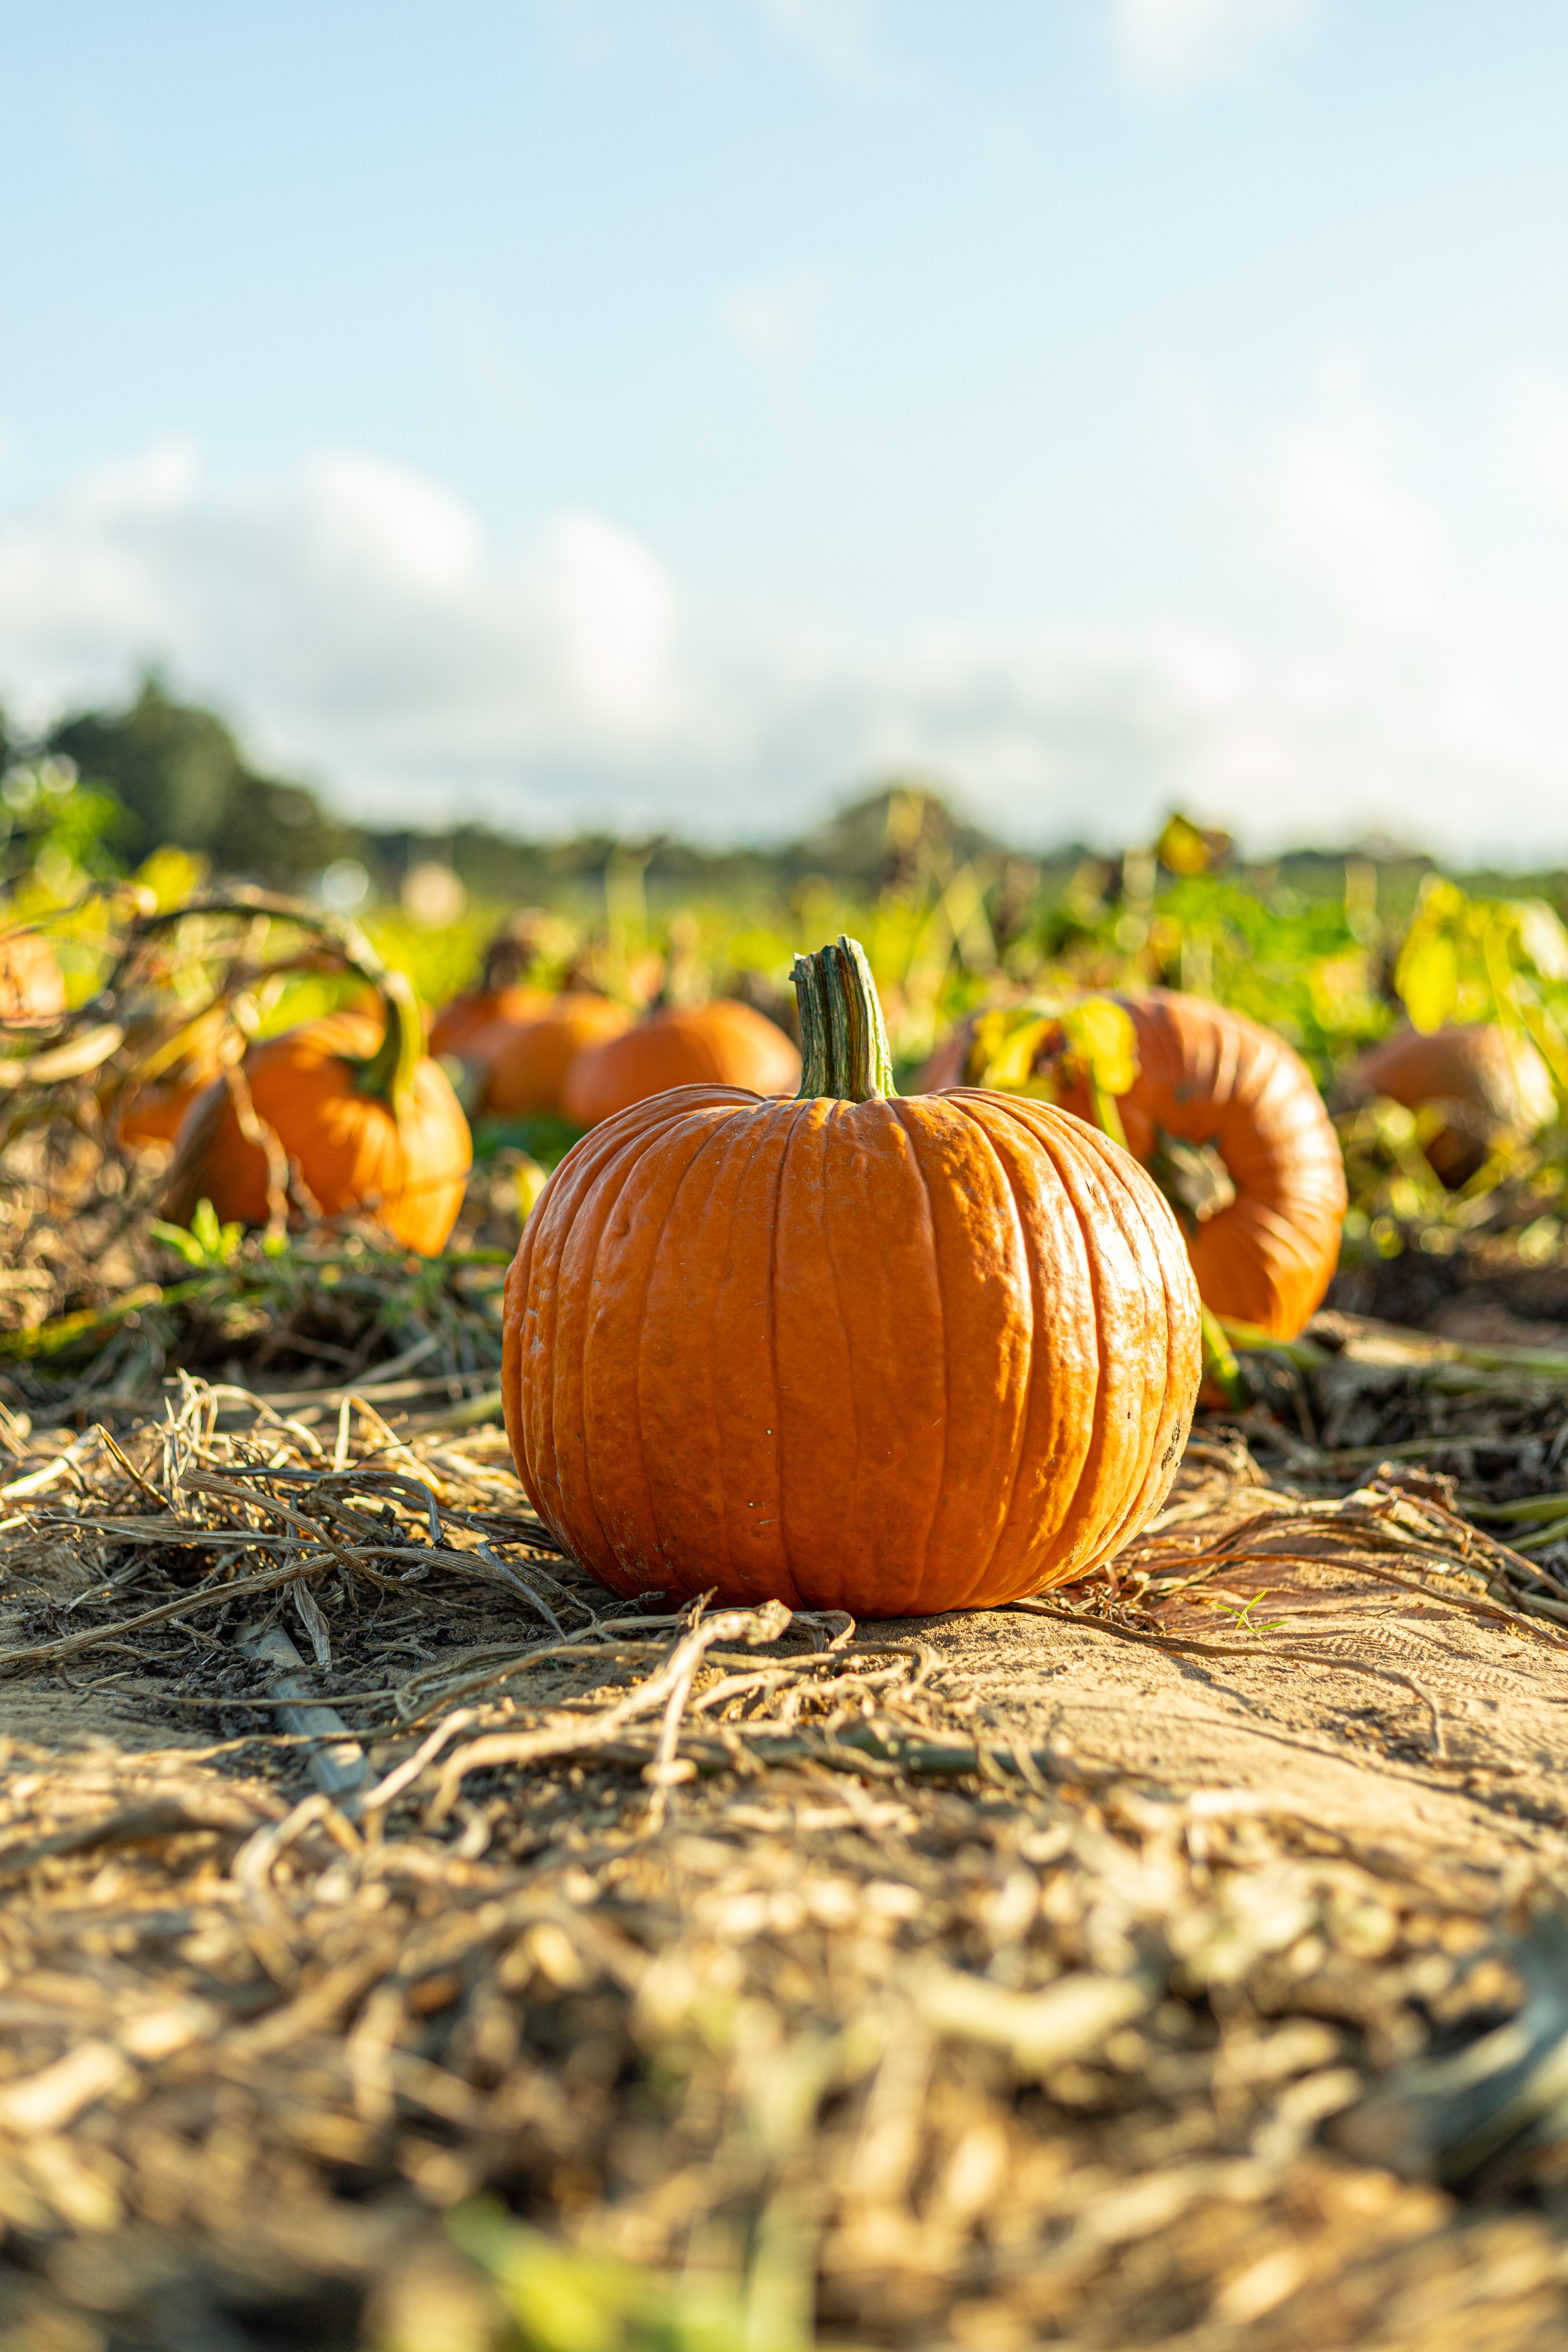 151991 Screensavers and Wallpapers Pumpkin for phone. Download Nature, Autumn, Pumpkin, Harvest, Vegetable pictures for free